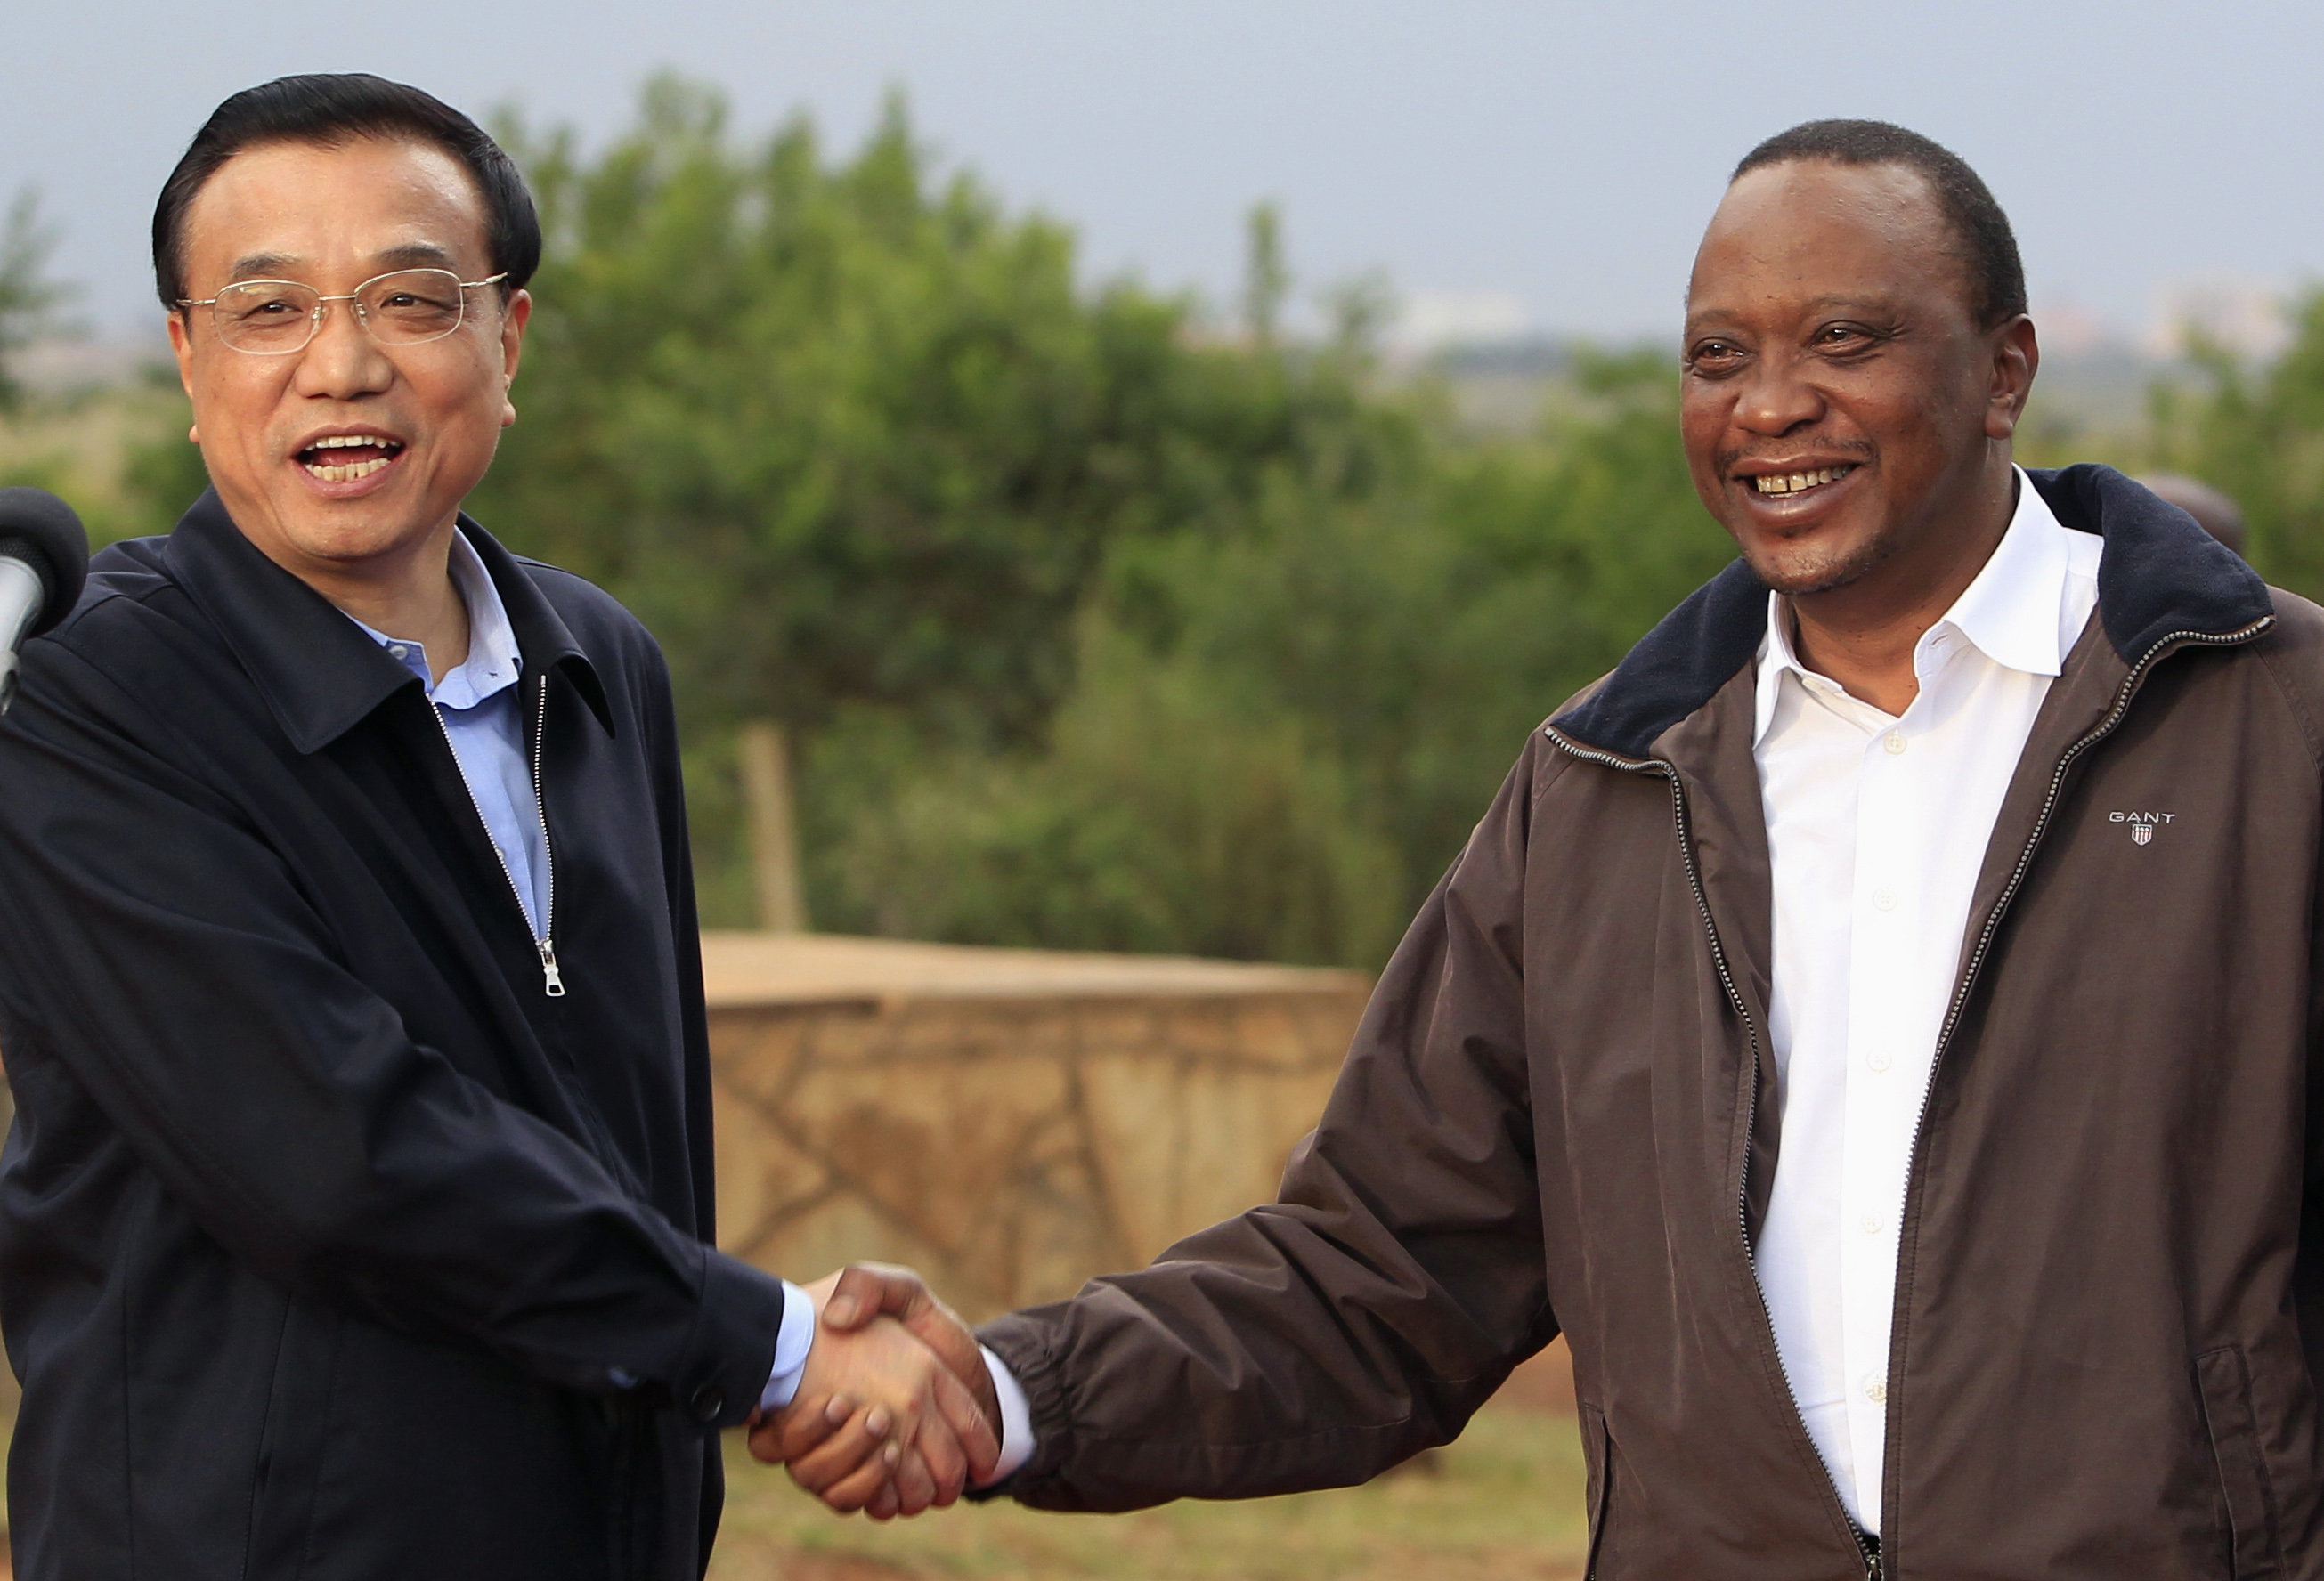 china africa relations Lu xinsheng says ivory smuggling and selling counterfeit goods hurts chinese reputation in african countries.